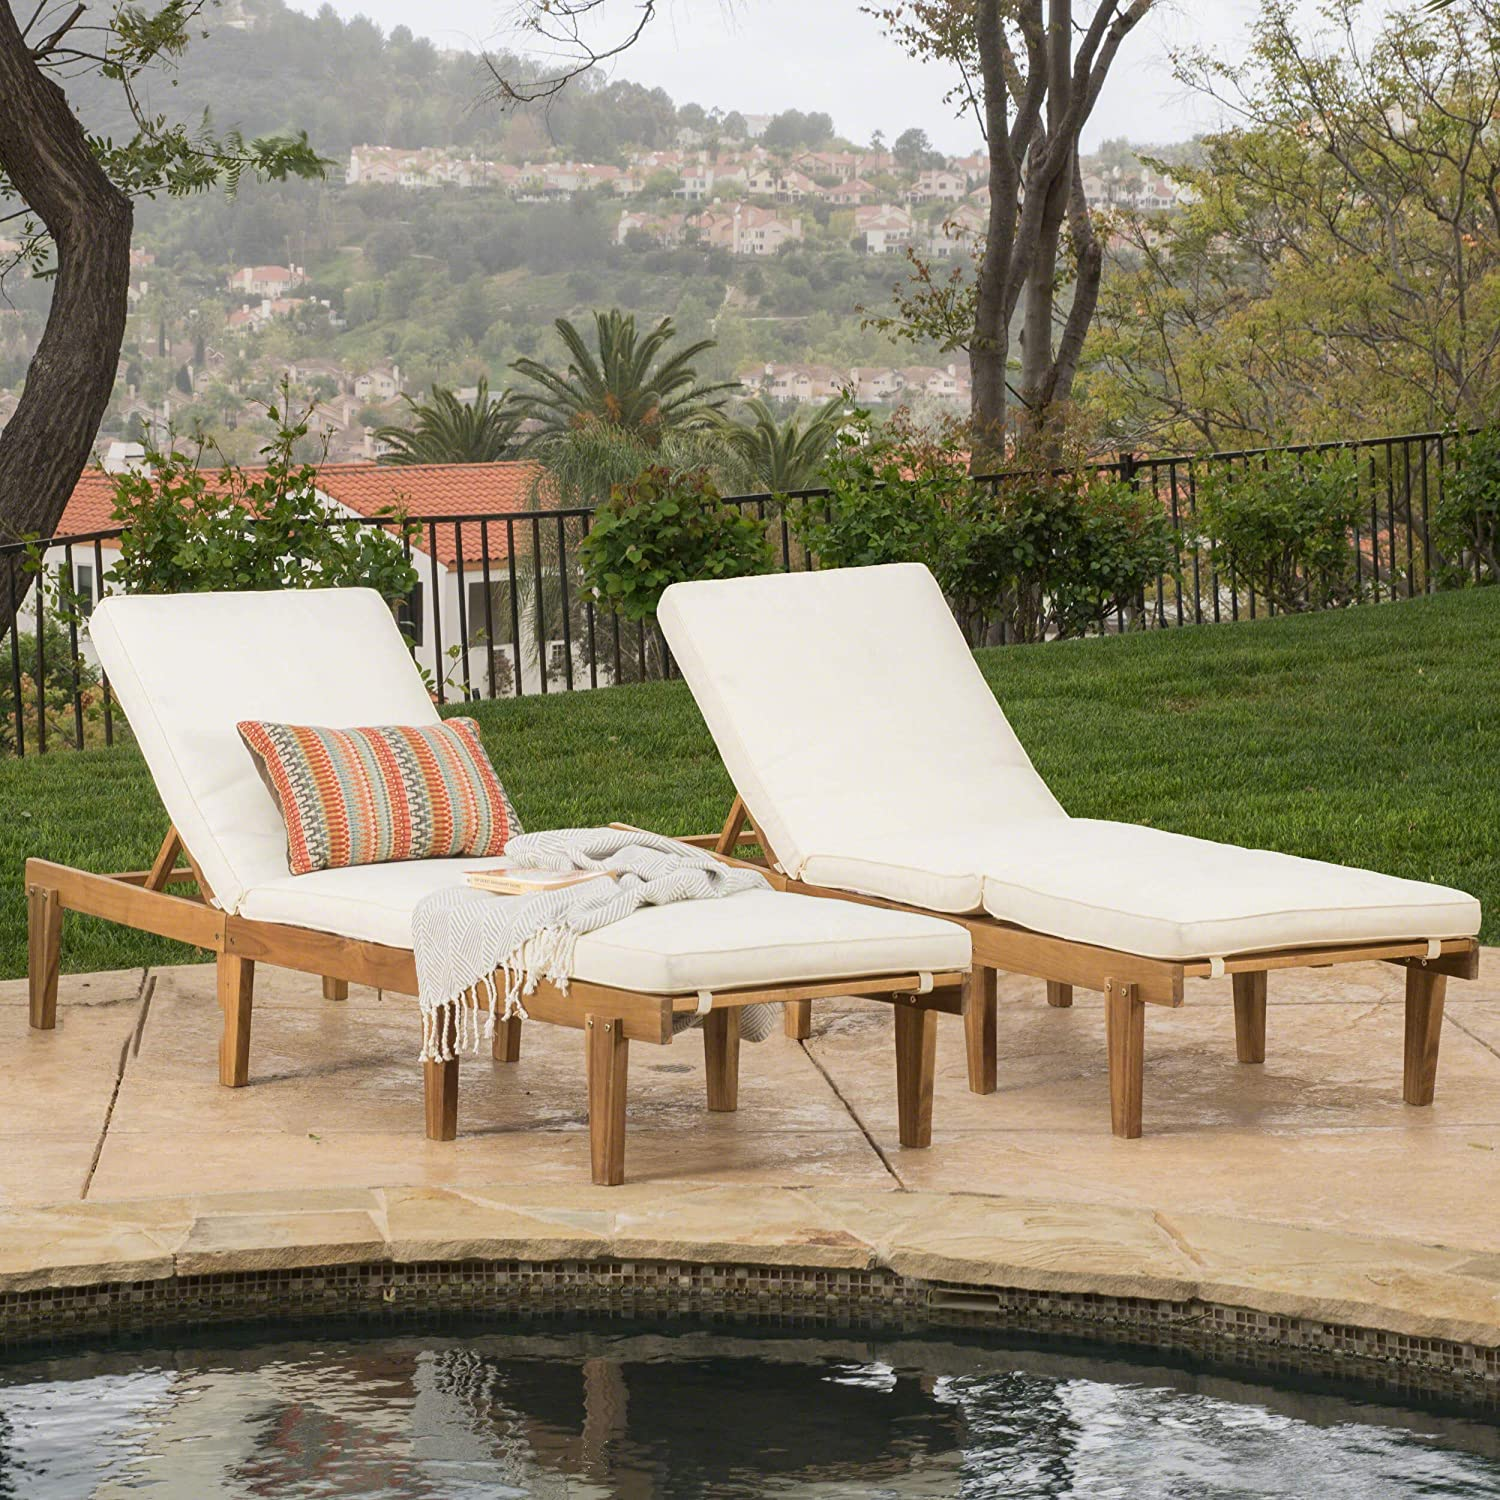 Christopher Knight Home Outdoor Pool/Deck Furniture, Teak Chaise Lounge Chairs with Cushions